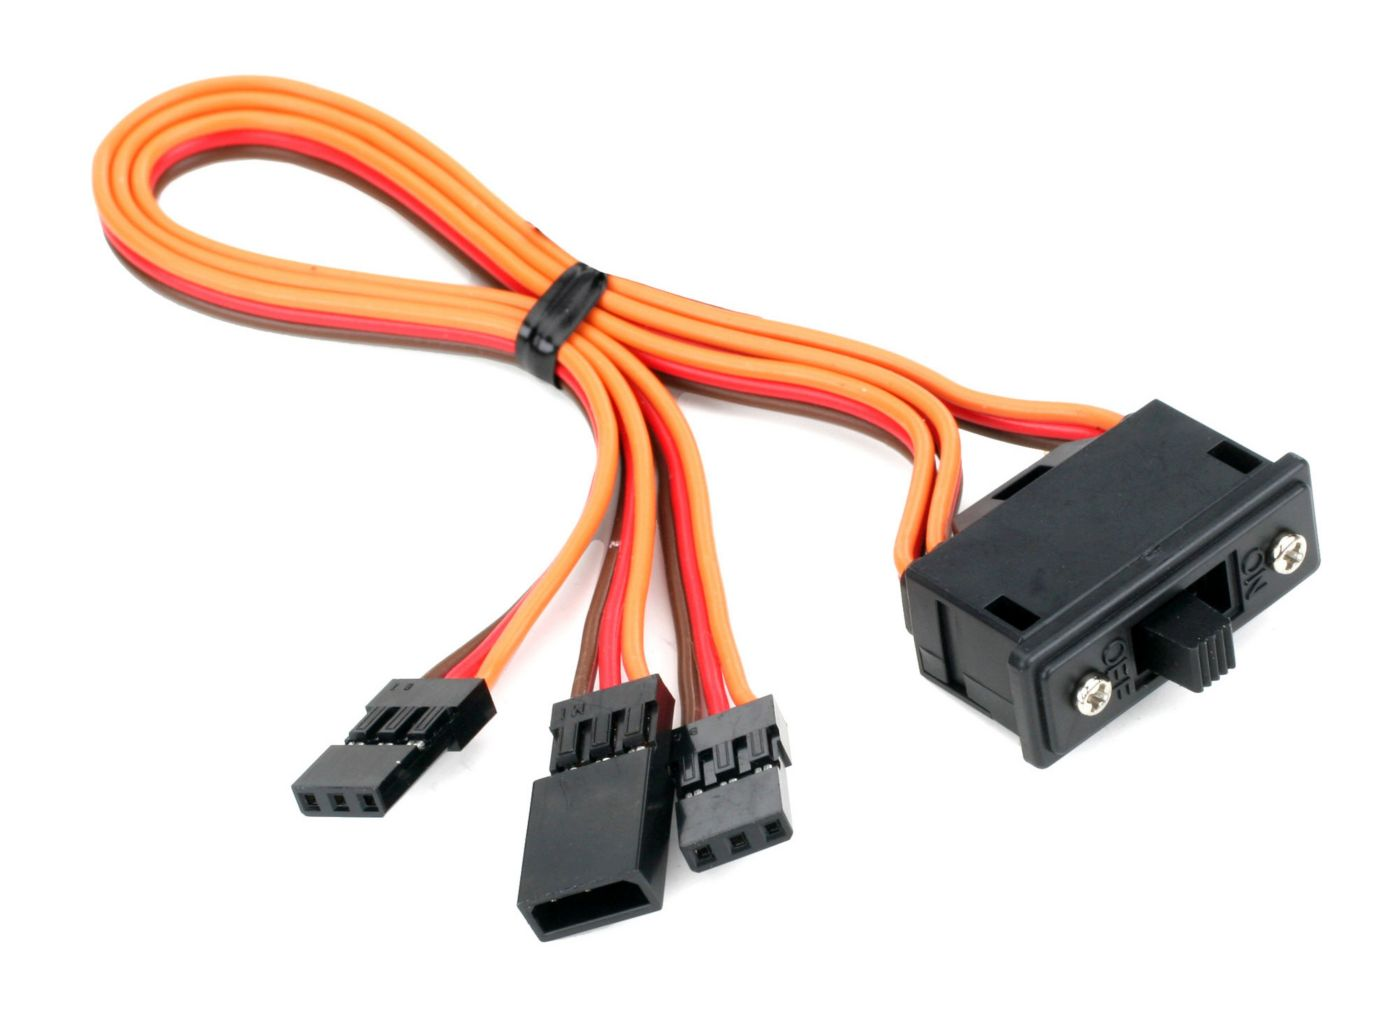 SPM9530_a0?wid=1400&hei=778 spektrum 3 wire switch harness horizonhobby 3 wire harness at edmiracle.co